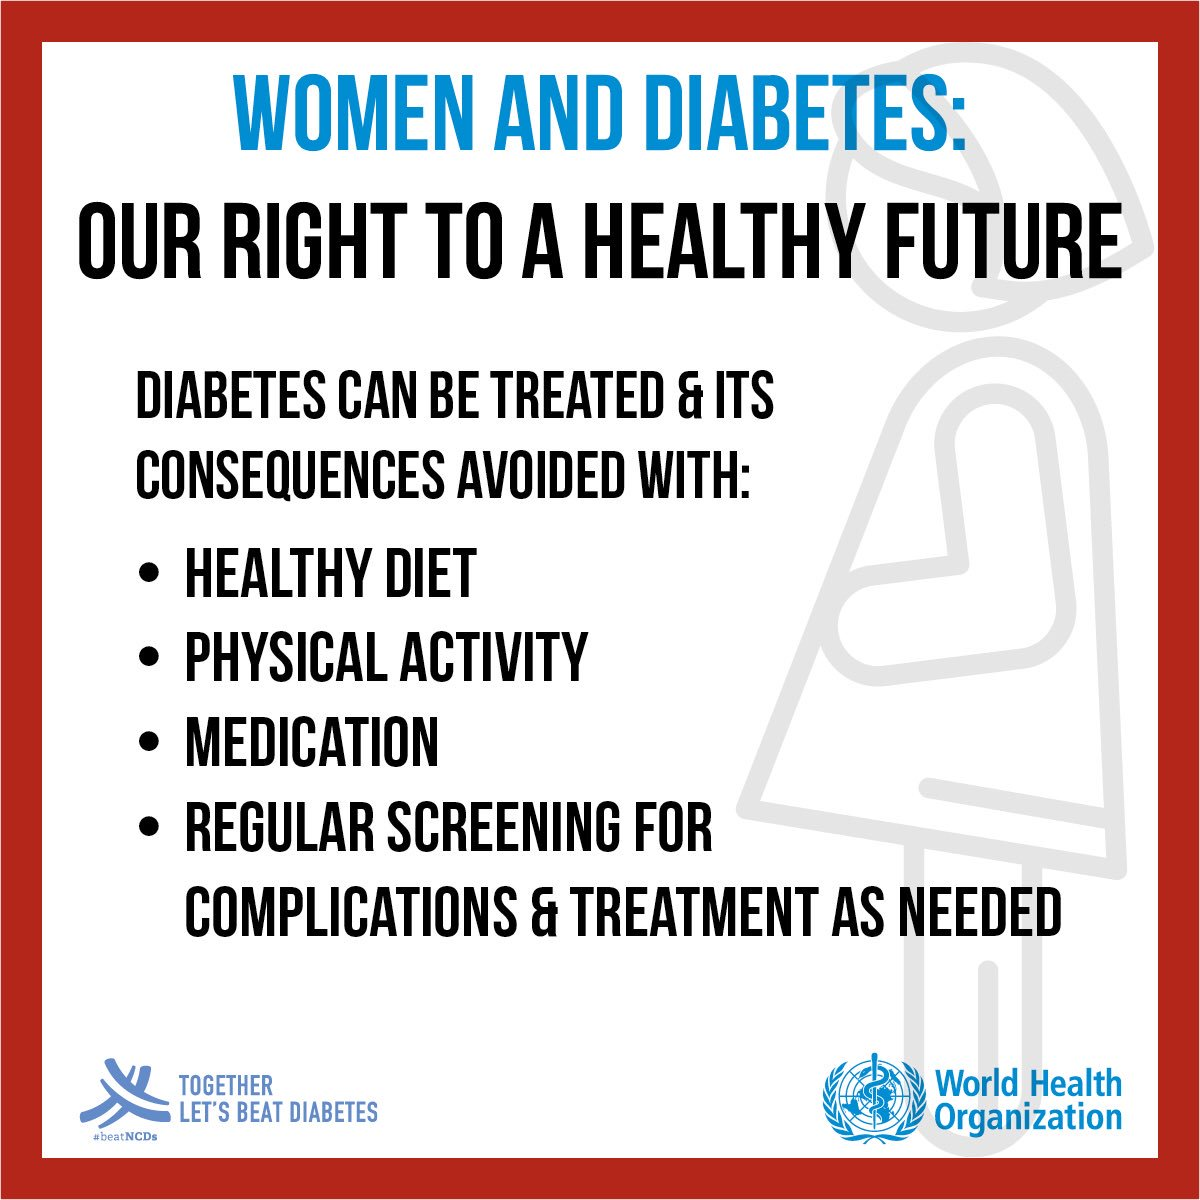 #Diabetes can be treated &amp; its consequences avoided with: -Healthy diet -Physical activity -Medication -Regular screening for complications &amp; treatment as needed <br>http://pic.twitter.com/2dtk1V335E